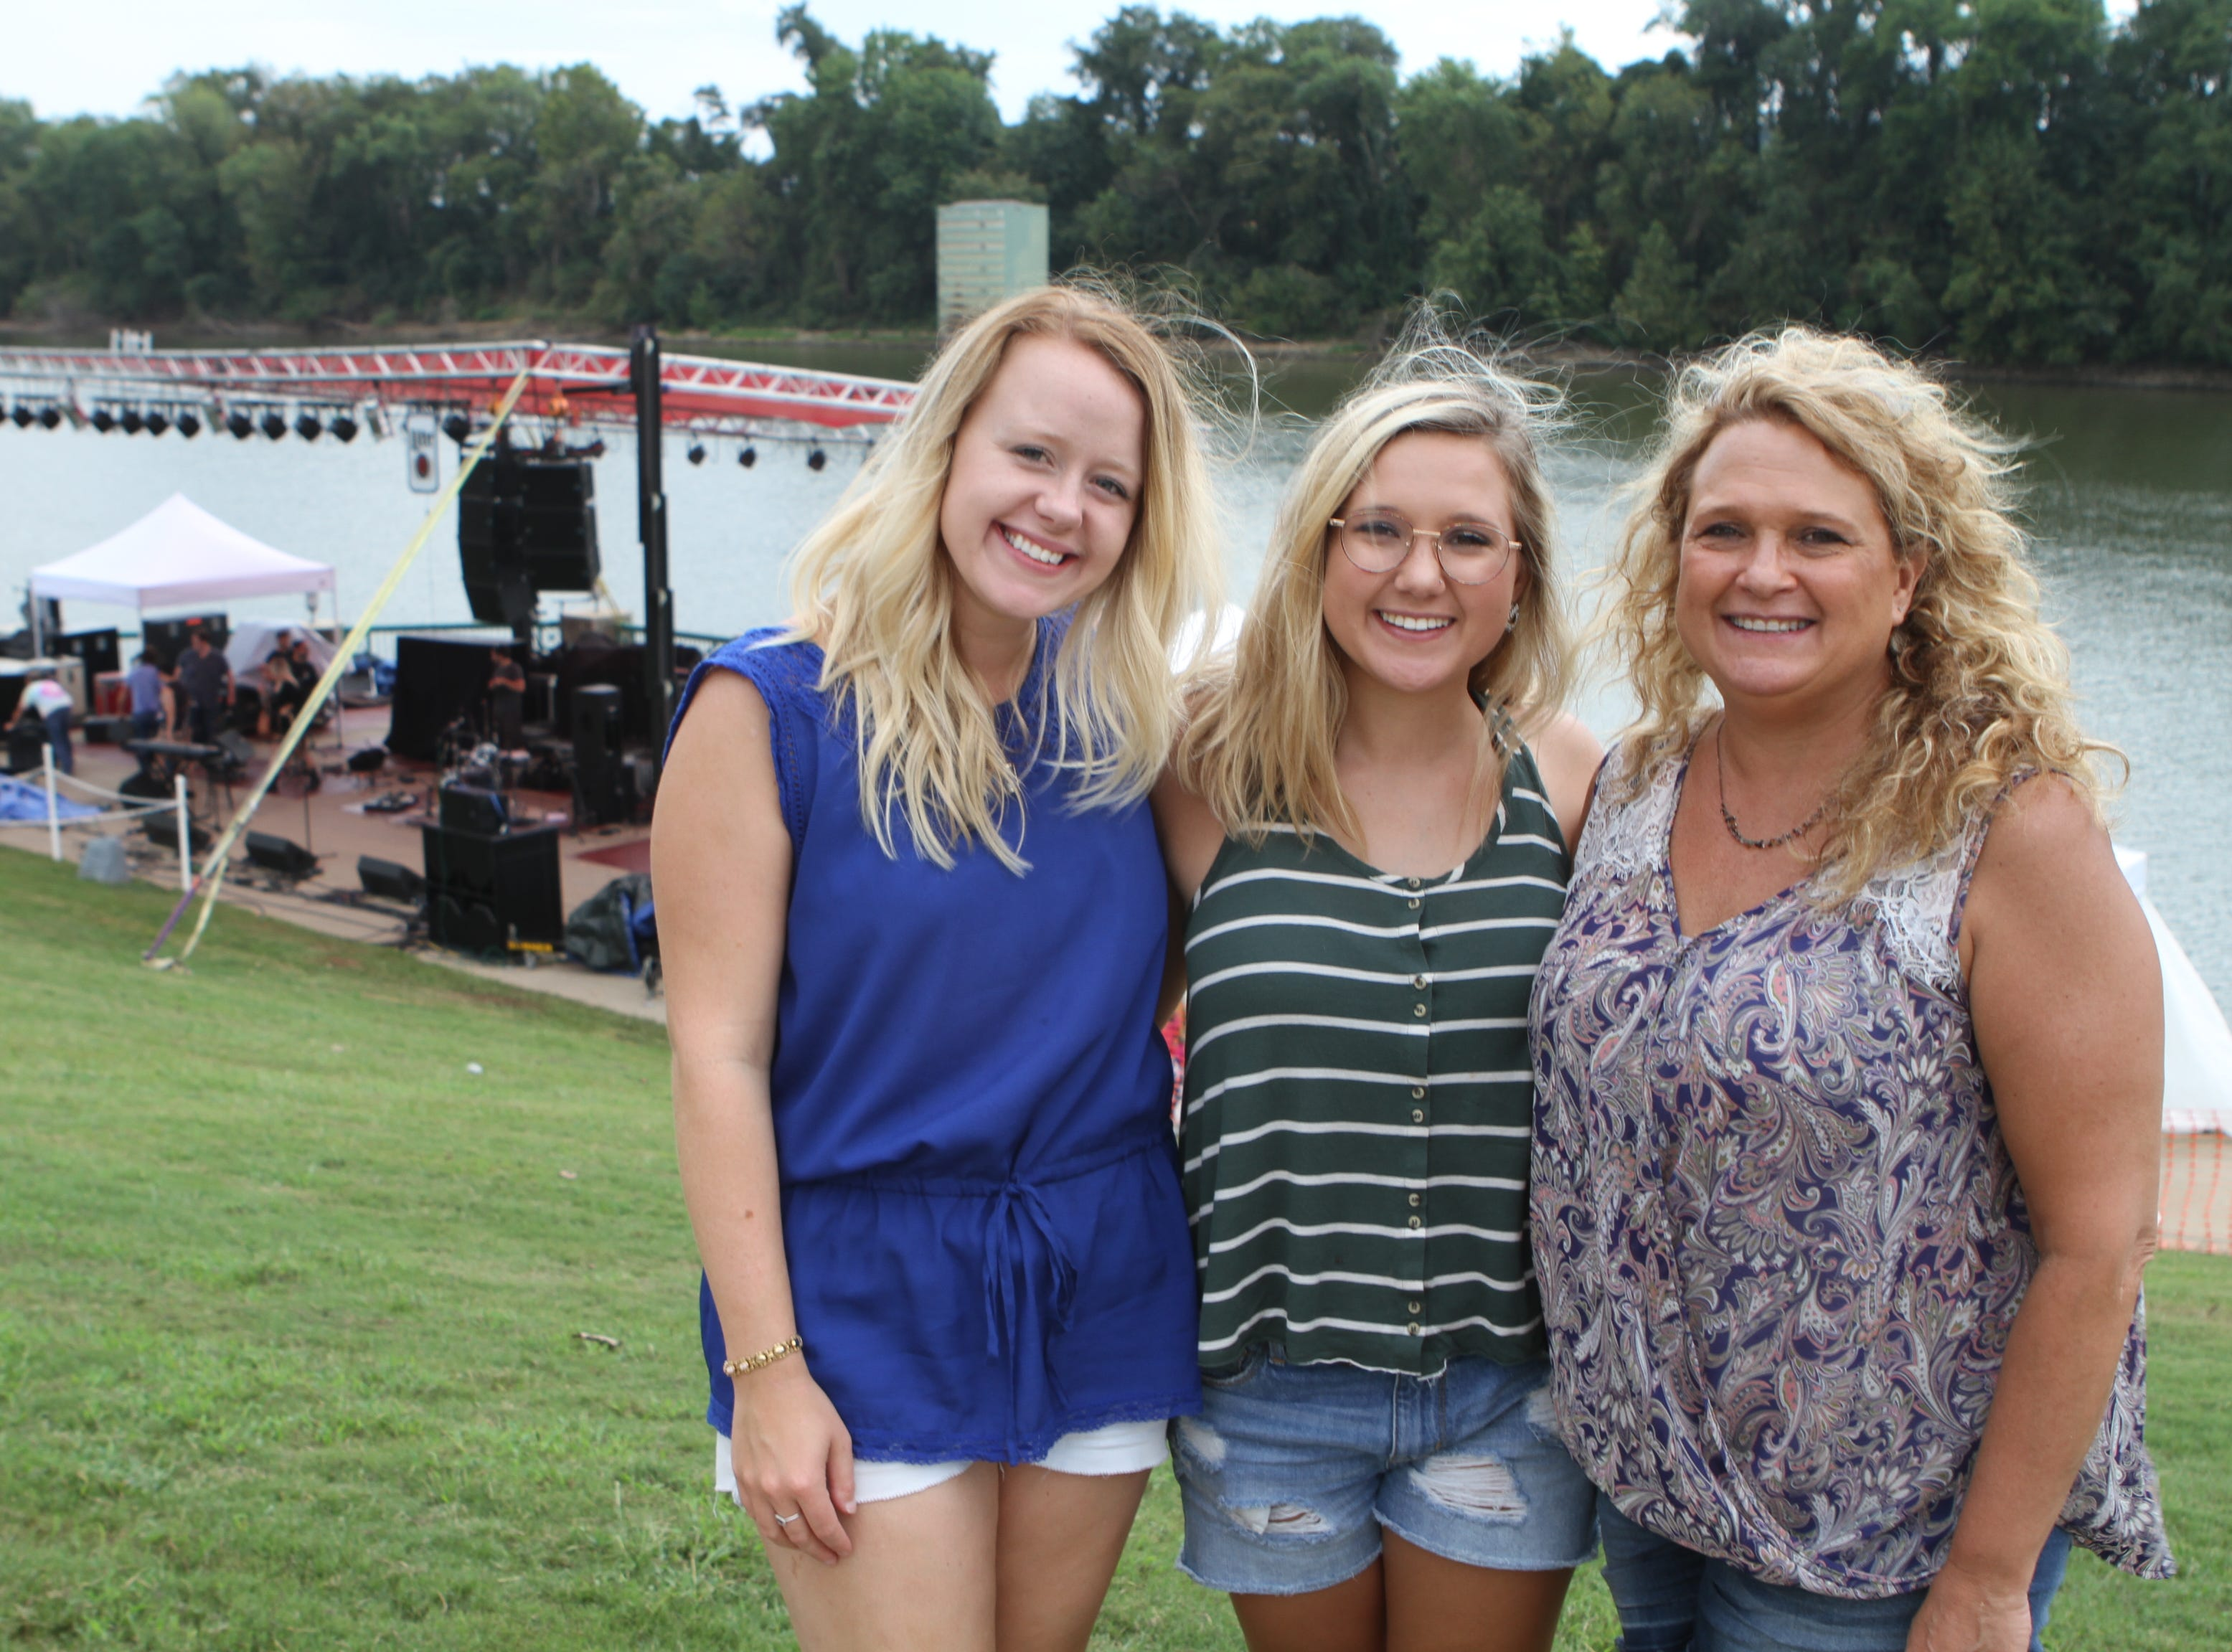 Kelsey Munday, Kara Vaughn and Cindy Rye at Clarksville Riverfest on Saturday, Sept. 8, 2018.